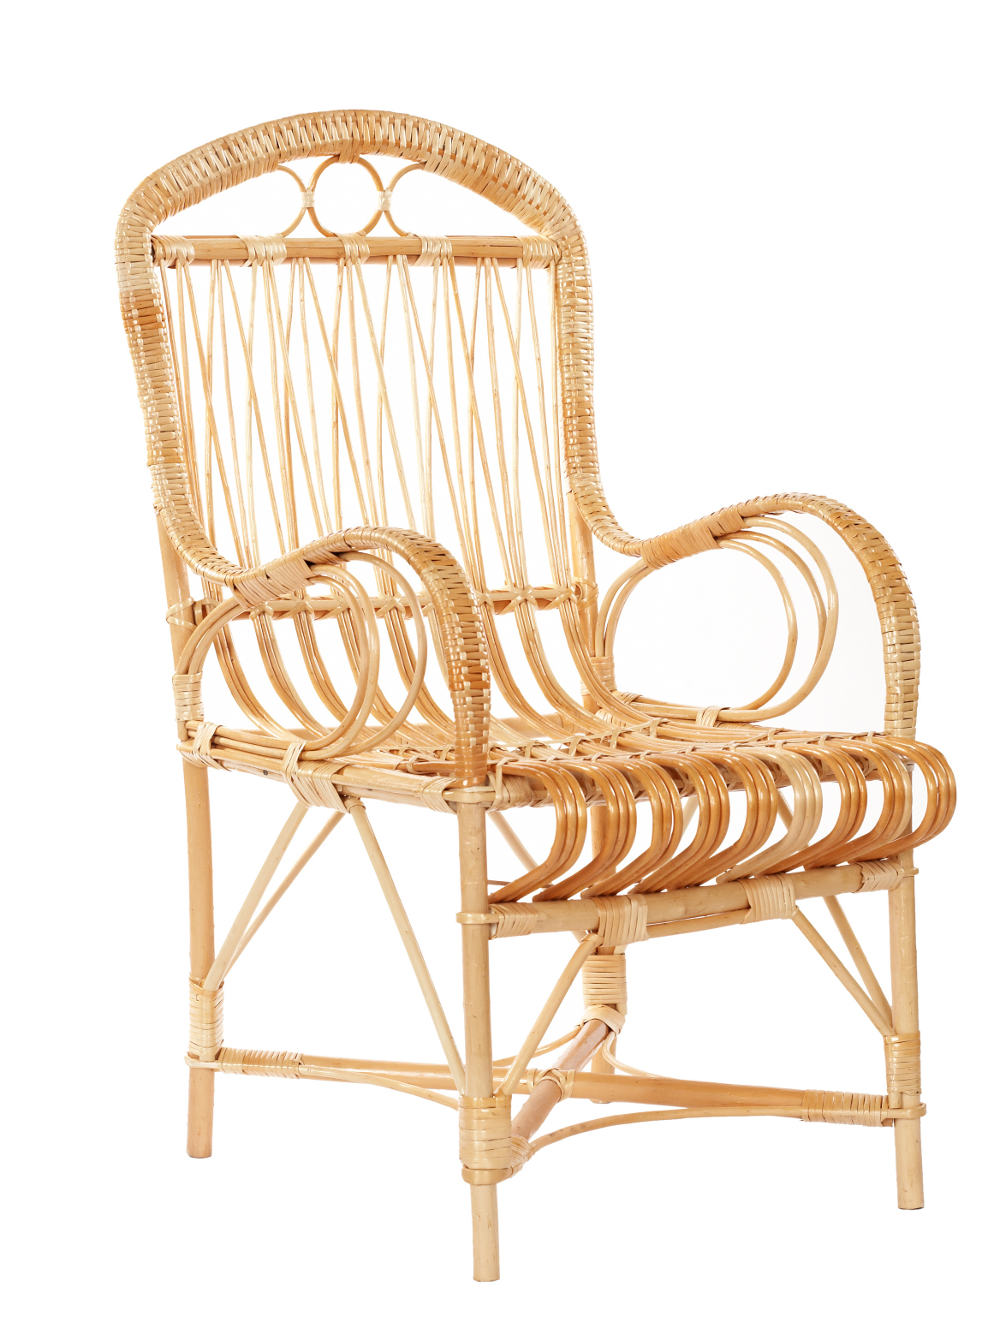 How To Repair Wicker Furniture  Learn How To Refinish